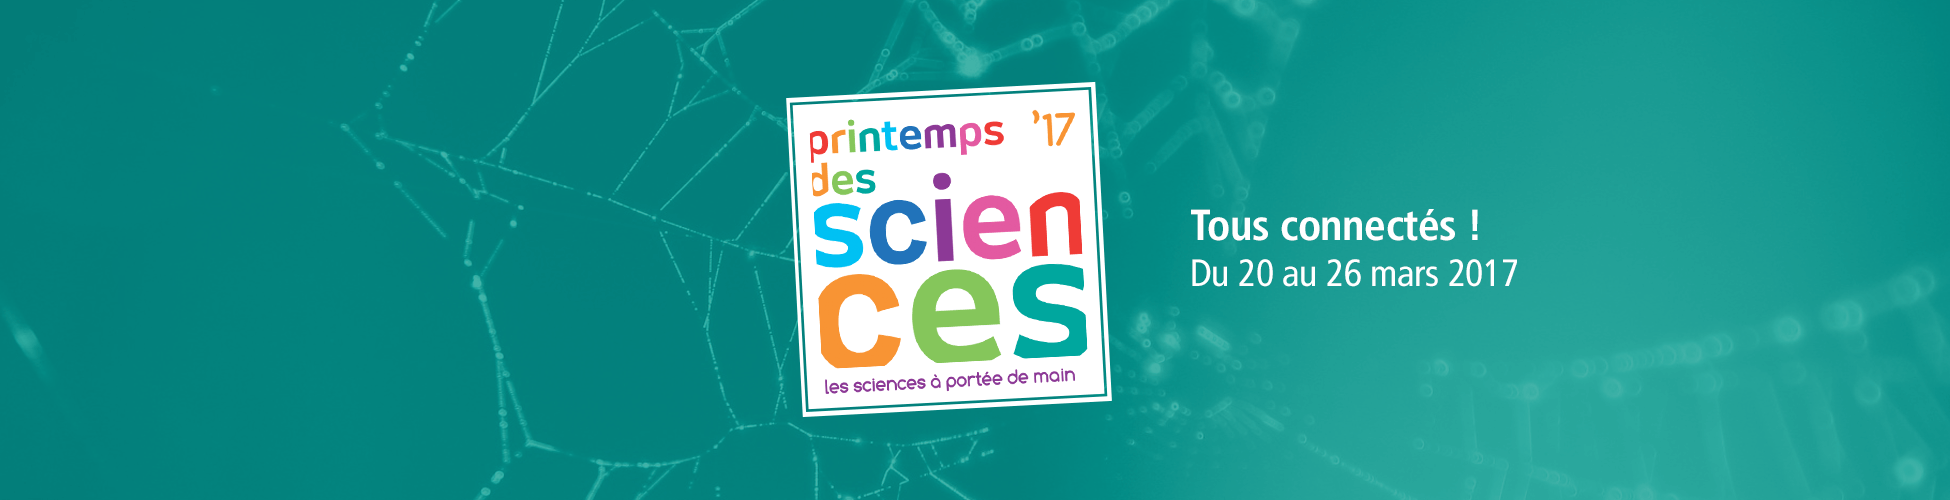 Printemps de sciences 2017